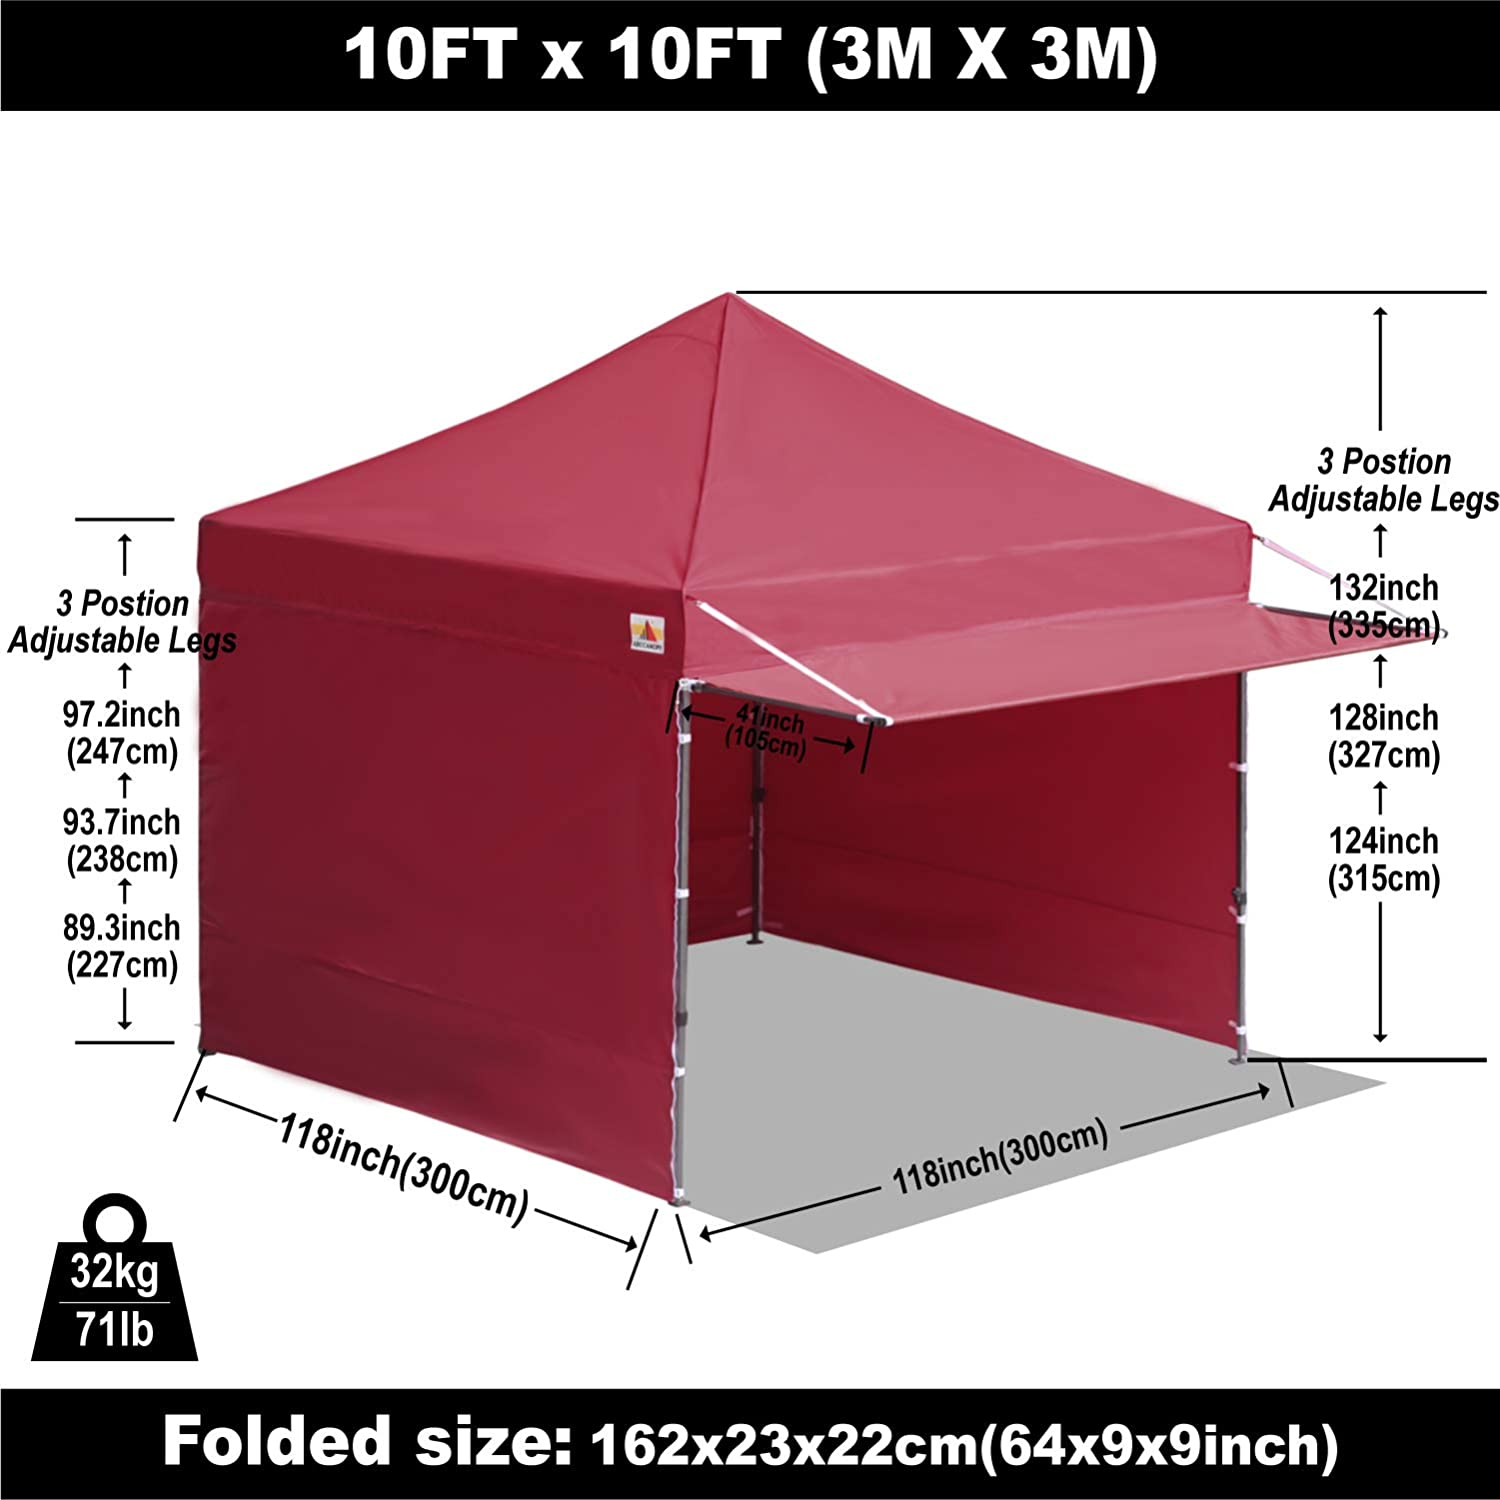 Weight Bags ABCCANOPY Canopy Tent 10 x 10 Pop-up Instant Shelters Commercial Portable Market Canopies with Matching Sidewalls Roller Bag,Bonus Canopy Awning